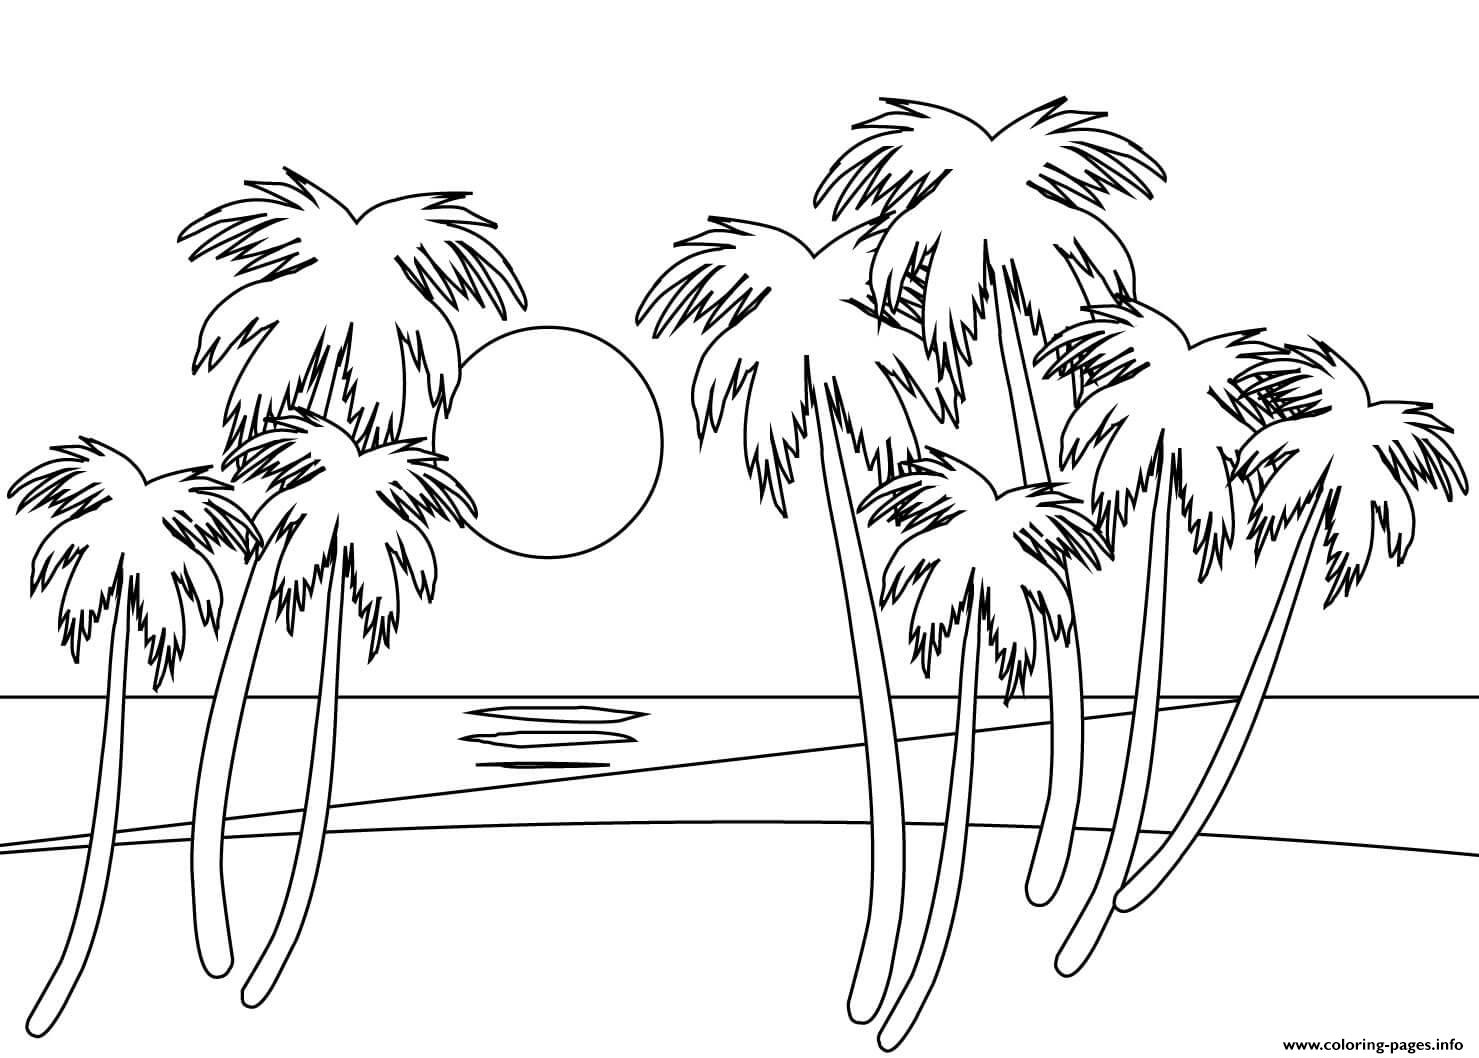 On The Beach coloring pages